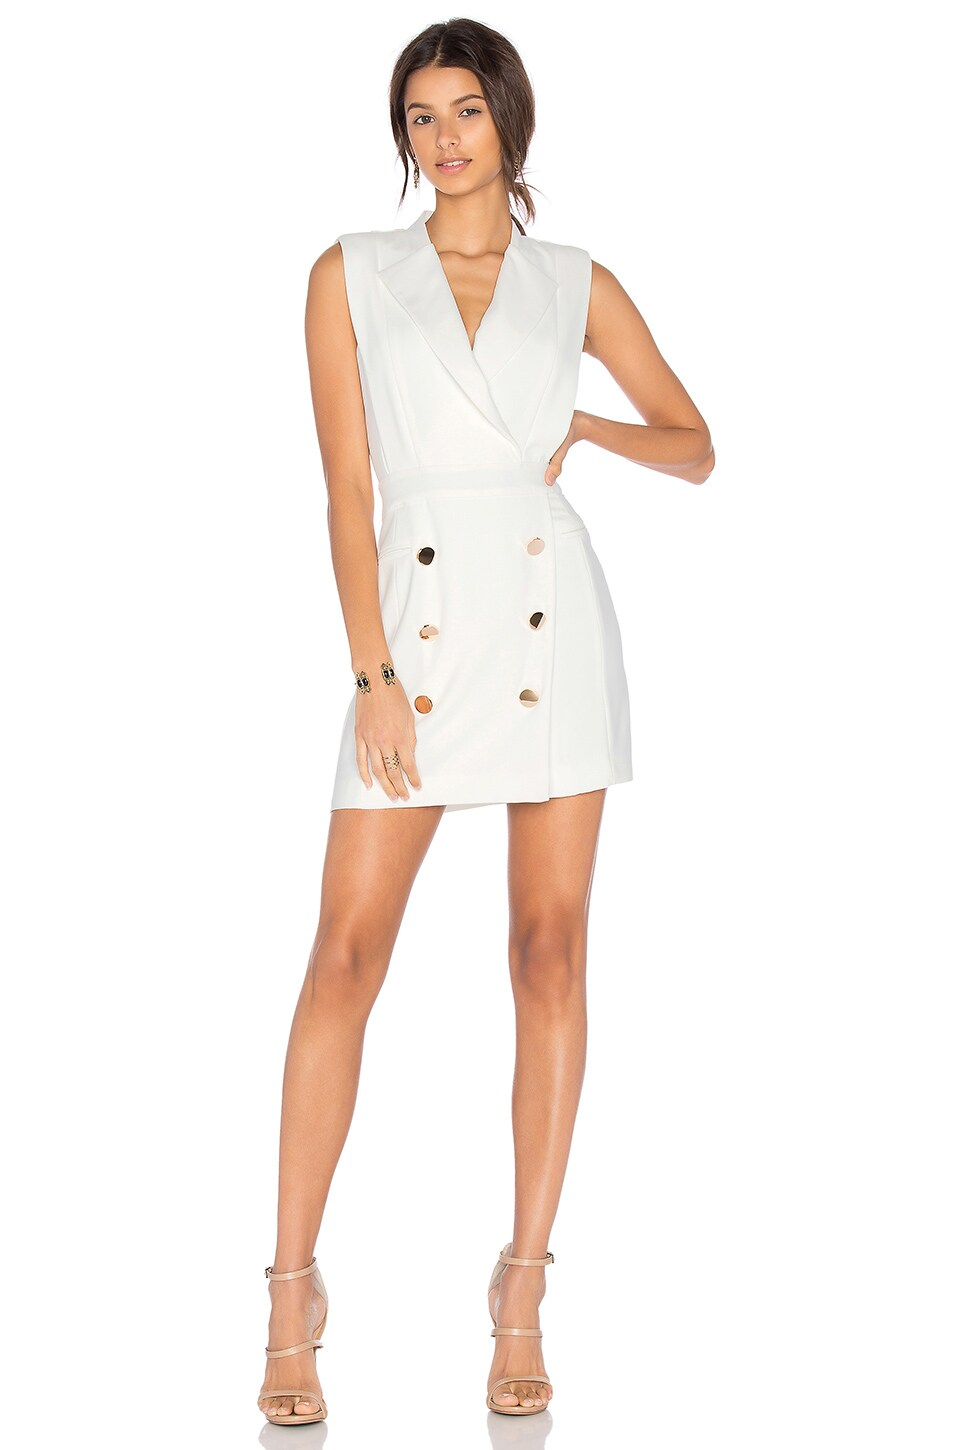 Lovers + Friends x REVOLVE Solace Dress in White